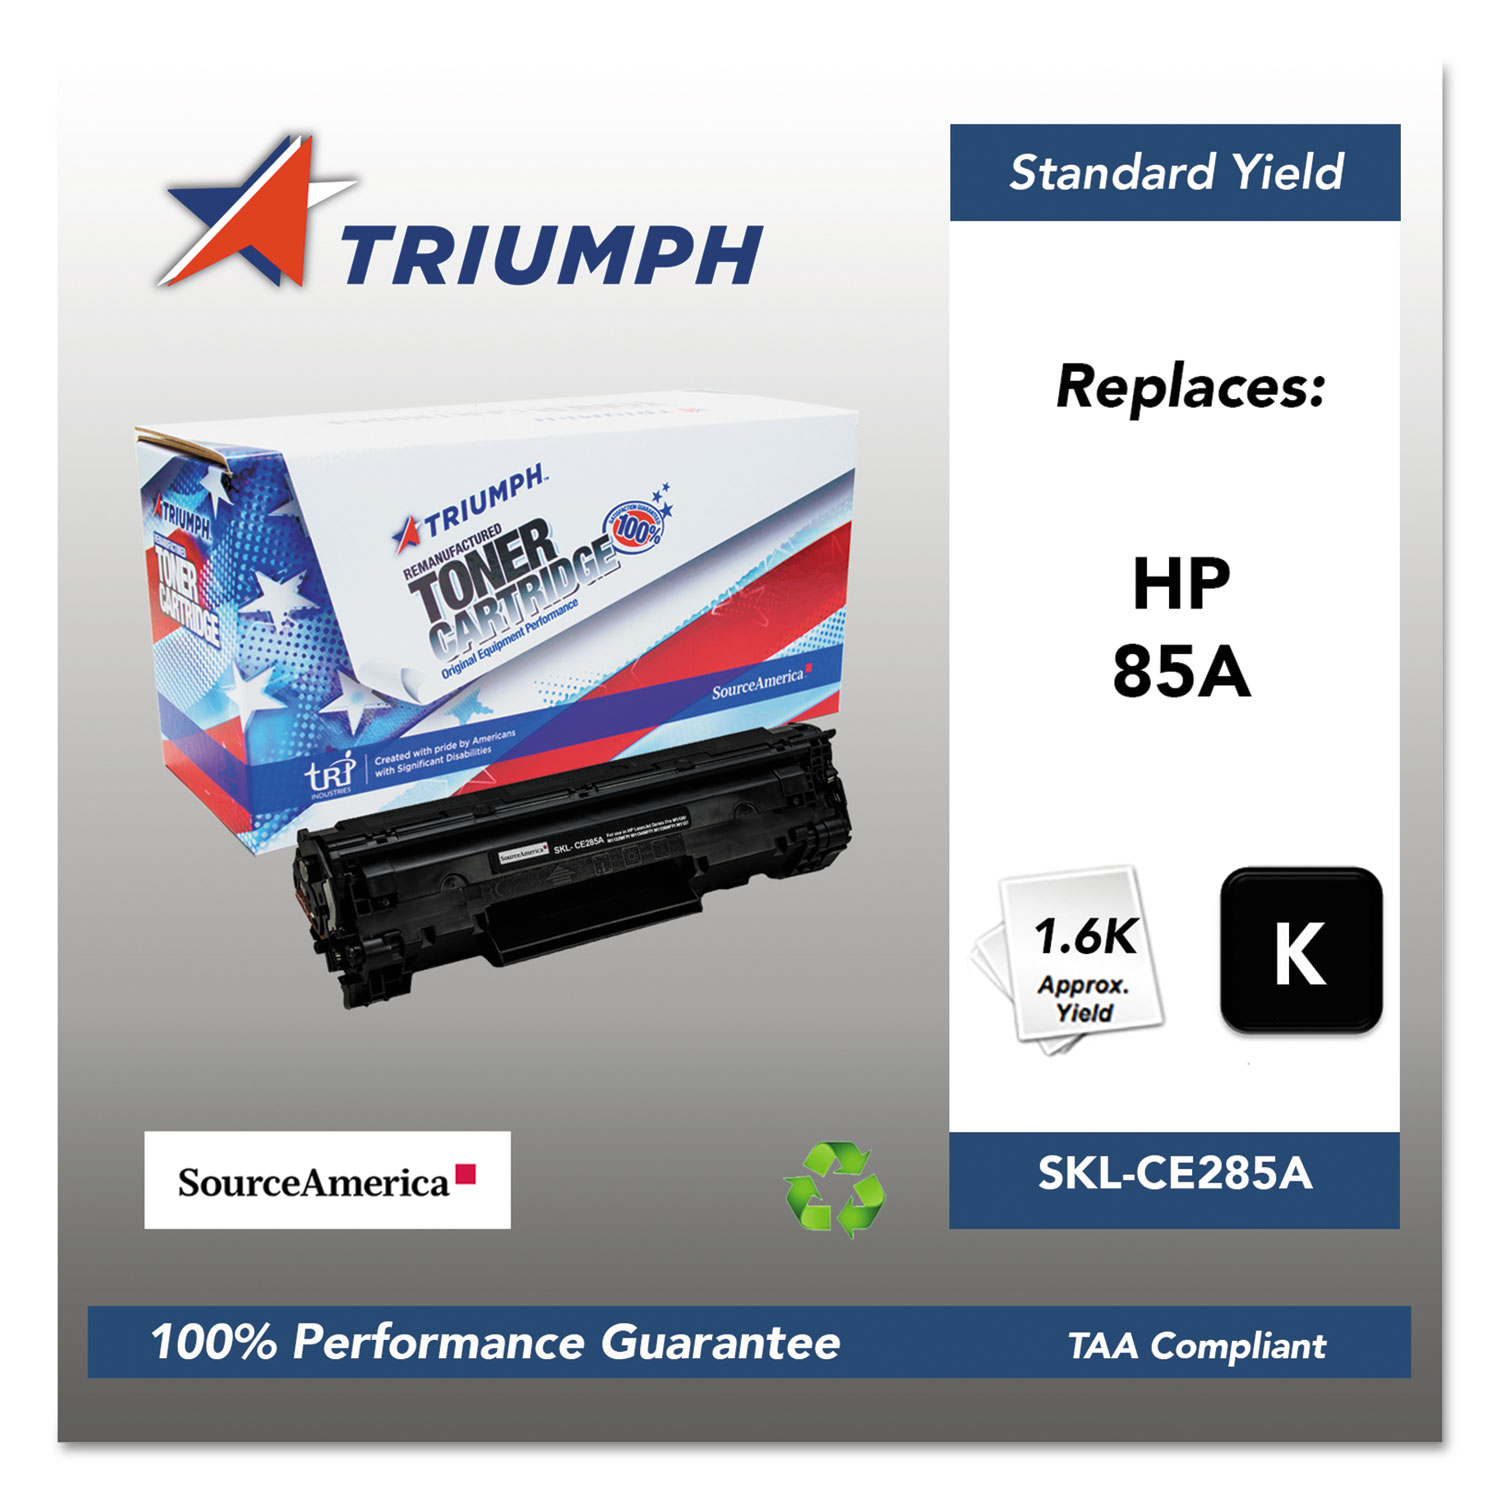 751000NSH1100 Remanufactured CE285A (85A) Toner, 1600 Page-Yield, Black